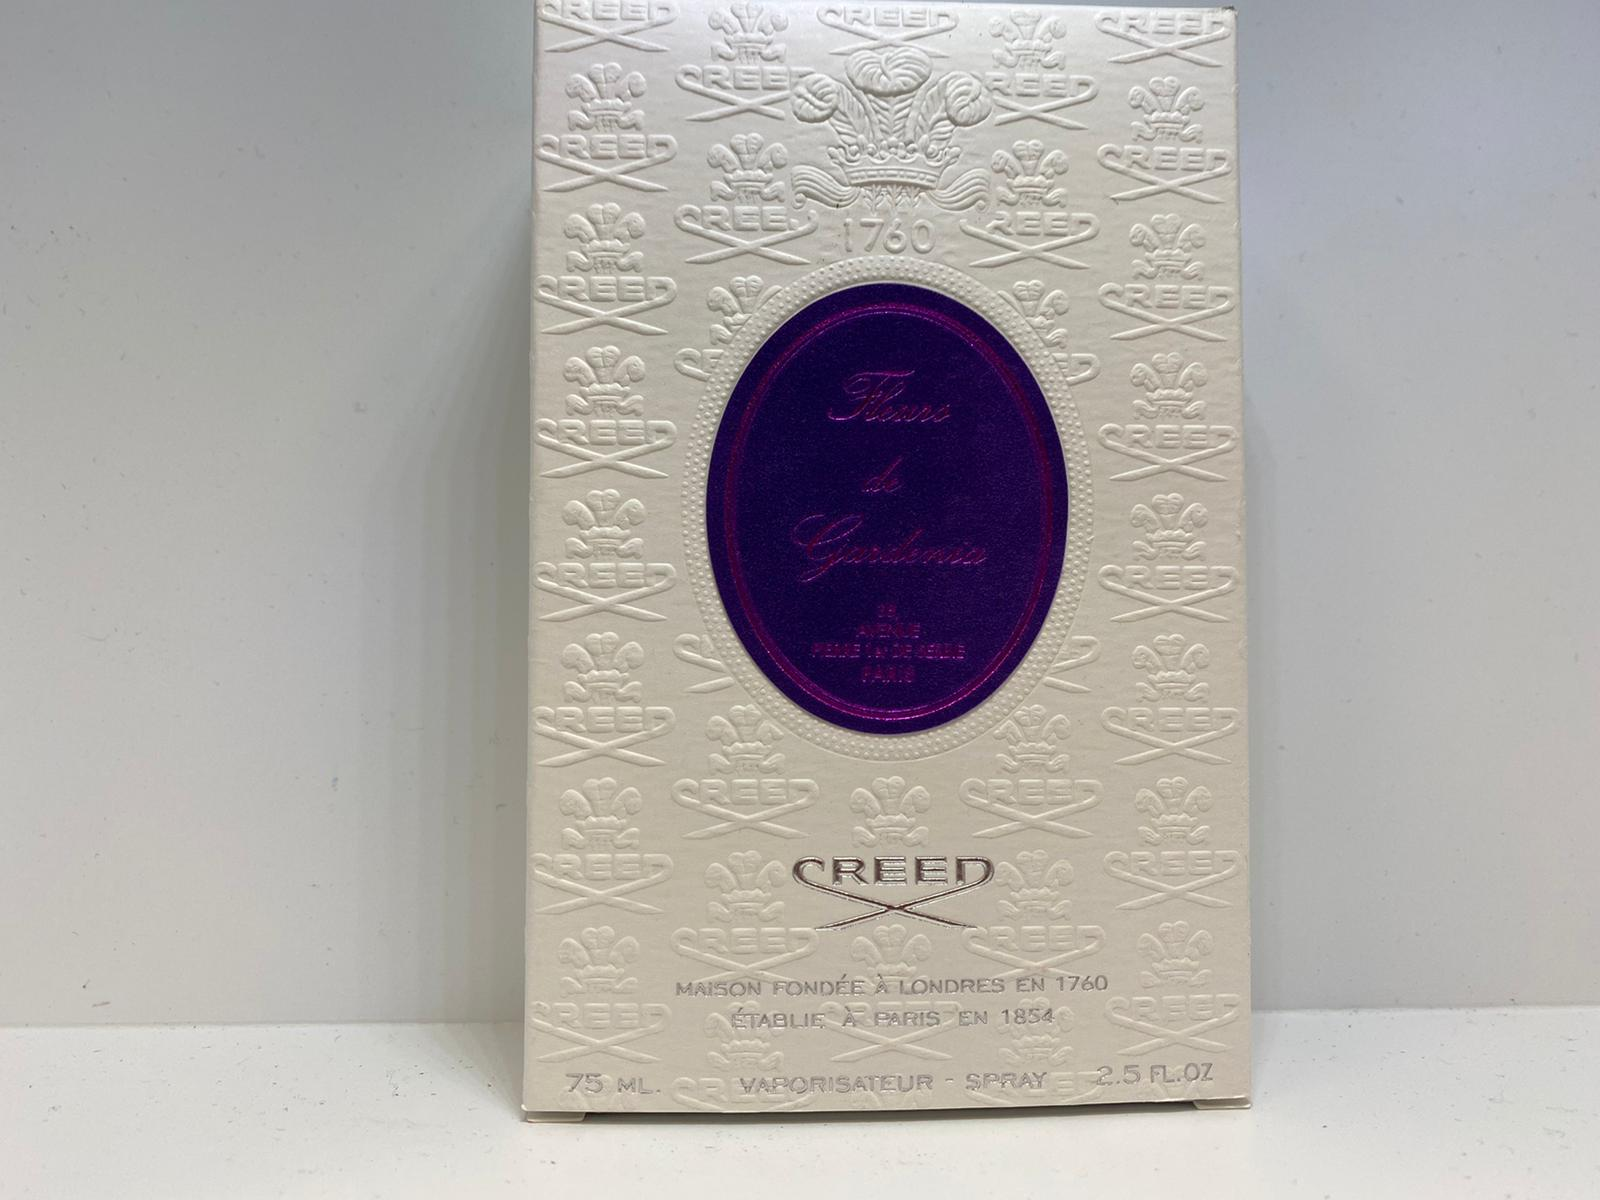 Creed Fleurs de Gardenia 75mL EDP - CURBSIDE PICKUP ONLY